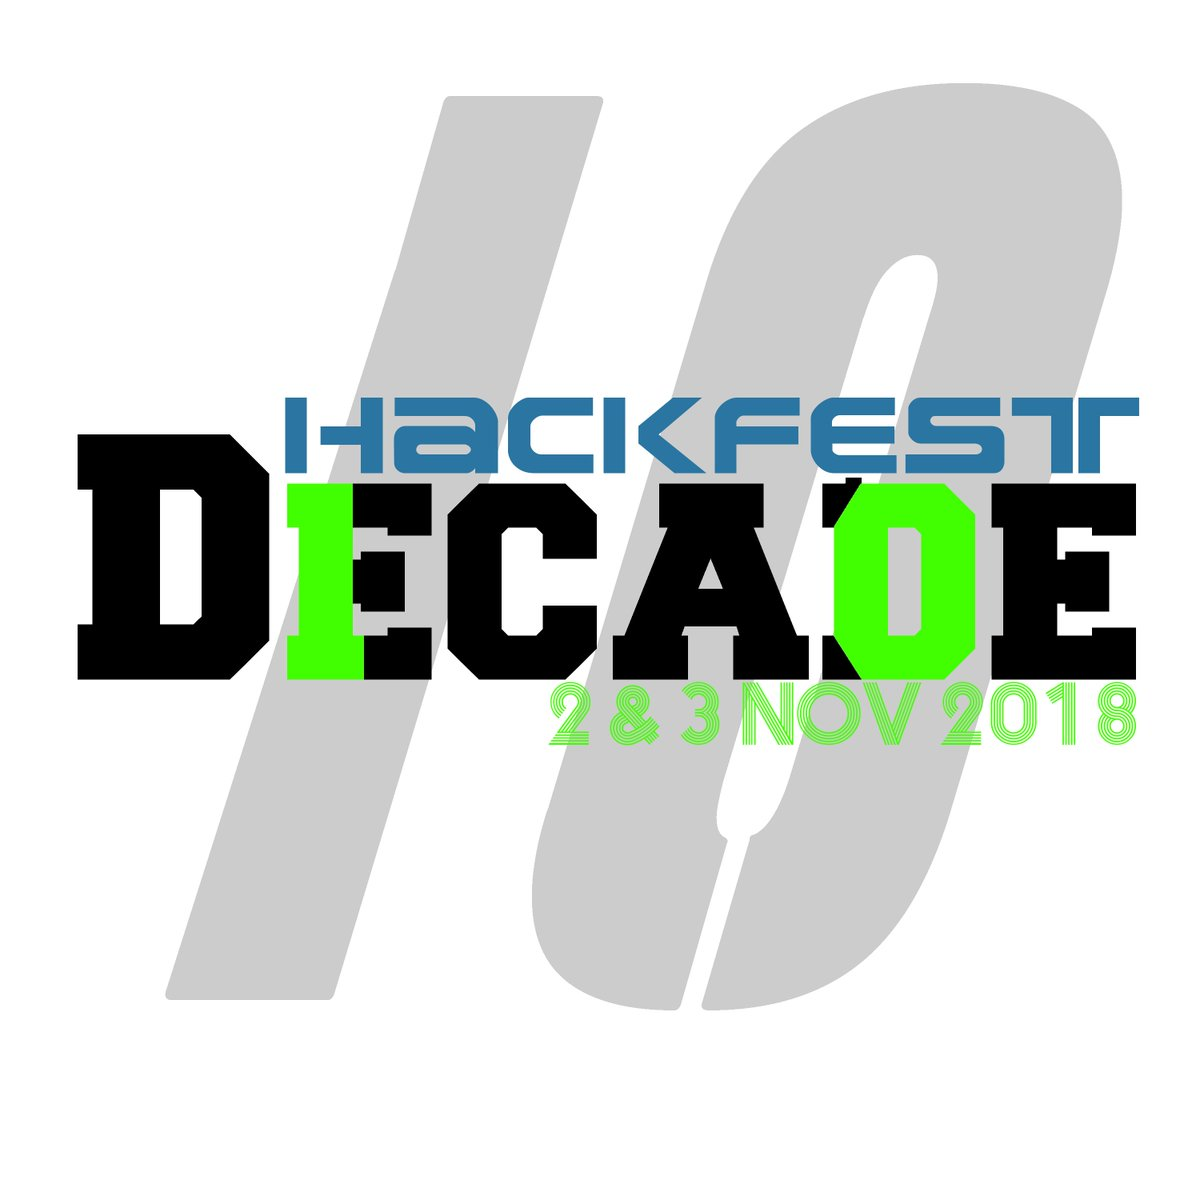 Hackfest DECADE 2018 - 2&amp;3 Nov - Tickets early bird price finish this weekend!  Hurry and get your tickets now. Even a better price when in group or large group!   https:// hackfest.ca/en/register  &nbsp;   #cfp #infosec #Security #hackfest #canada #quebec #infosecurity <br>http://pic.twitter.com/yOCcPR3yCa